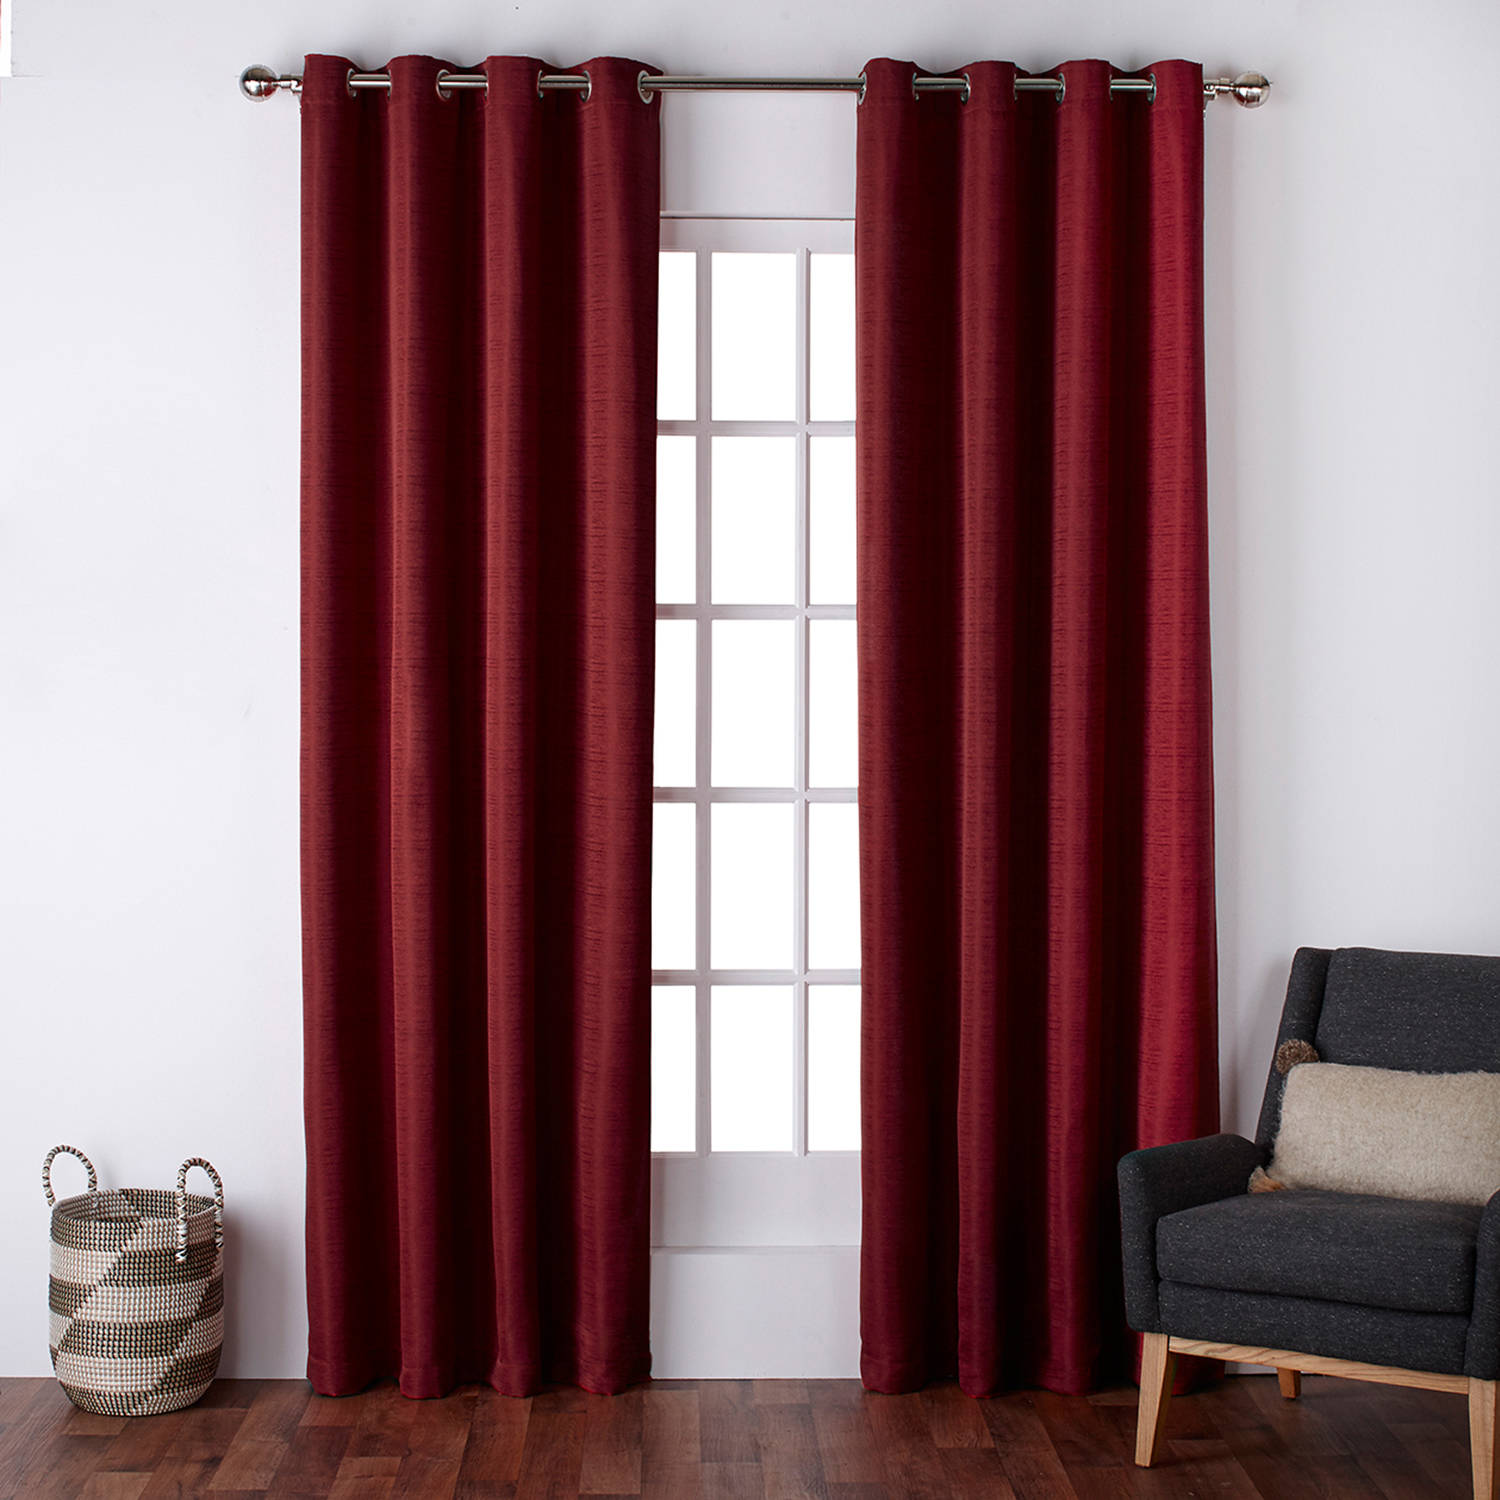 "Exclusive Home Virenze Faux Silk Grommet Top Window Curtain Panels, 54"" X 96"", Chili, Set of 2 / Pair"